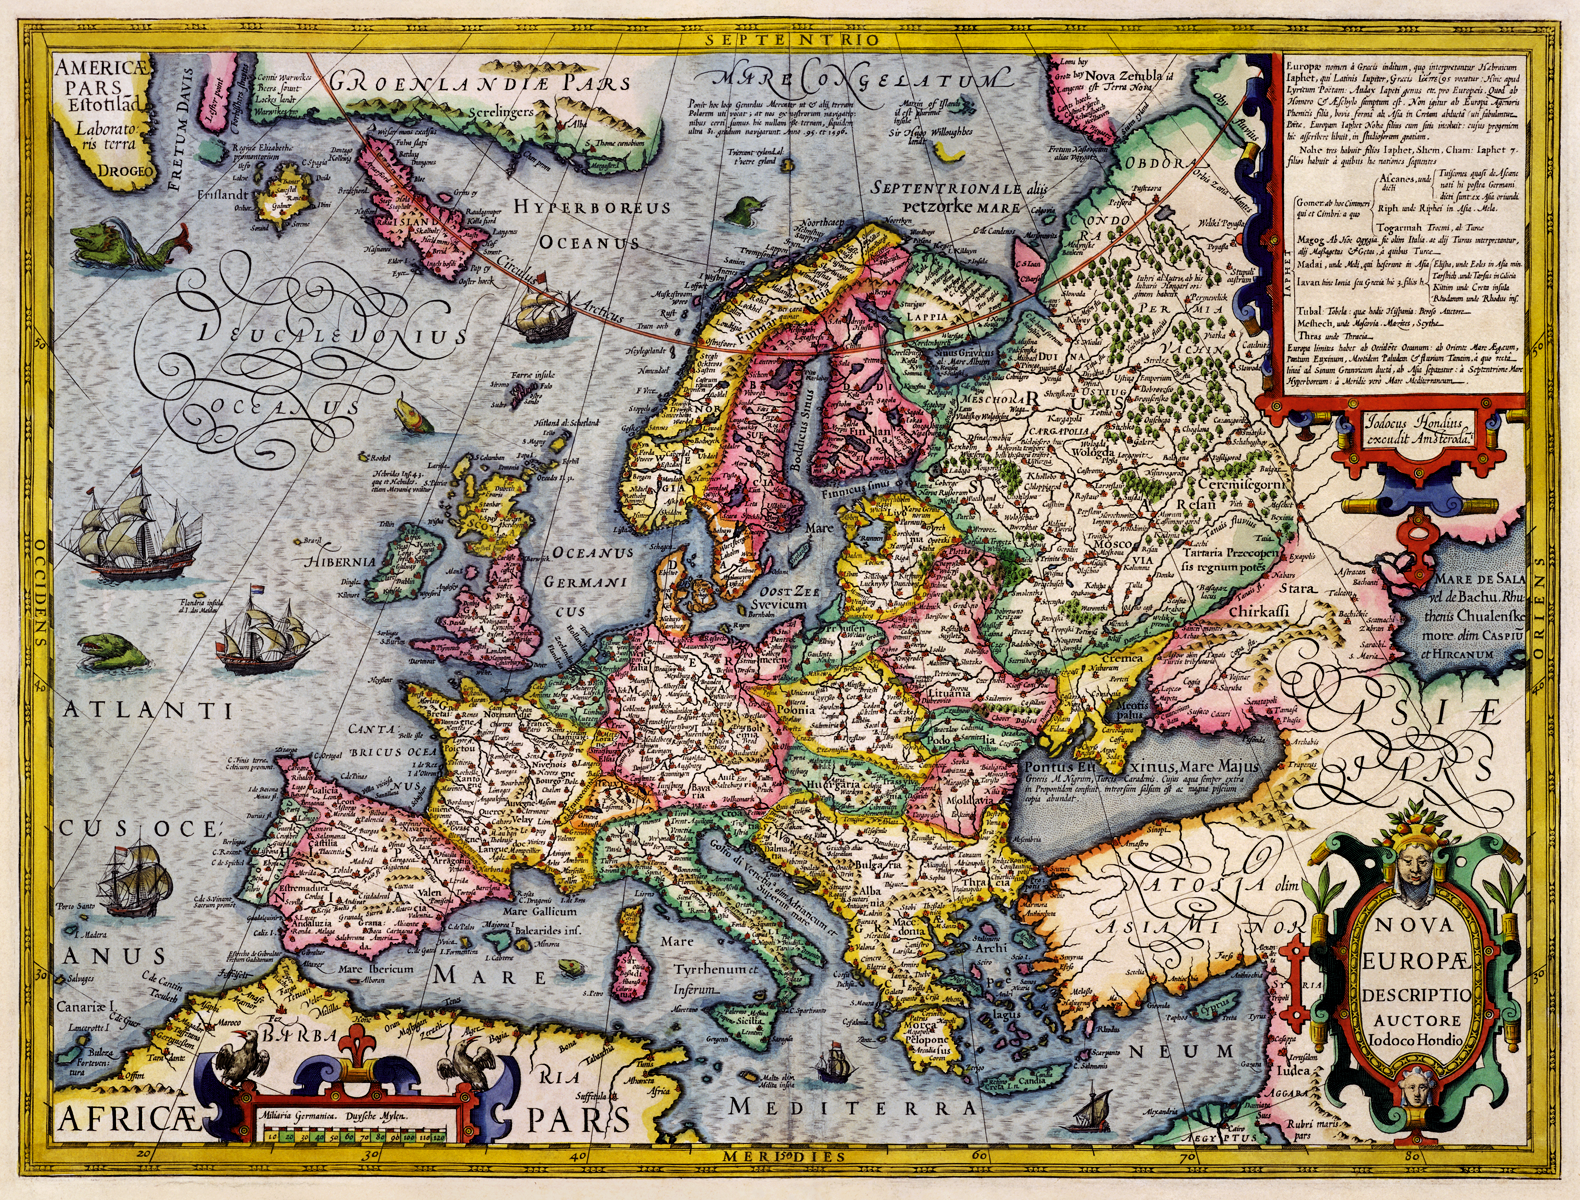 http://4.bp.blogspot.com/-IIugmqEykDM/Tzp_lkmweTI/AAAAAAAAAnM/R5BQxPWSikI/s1600/Antique-Map-of-+Europe+1596.png